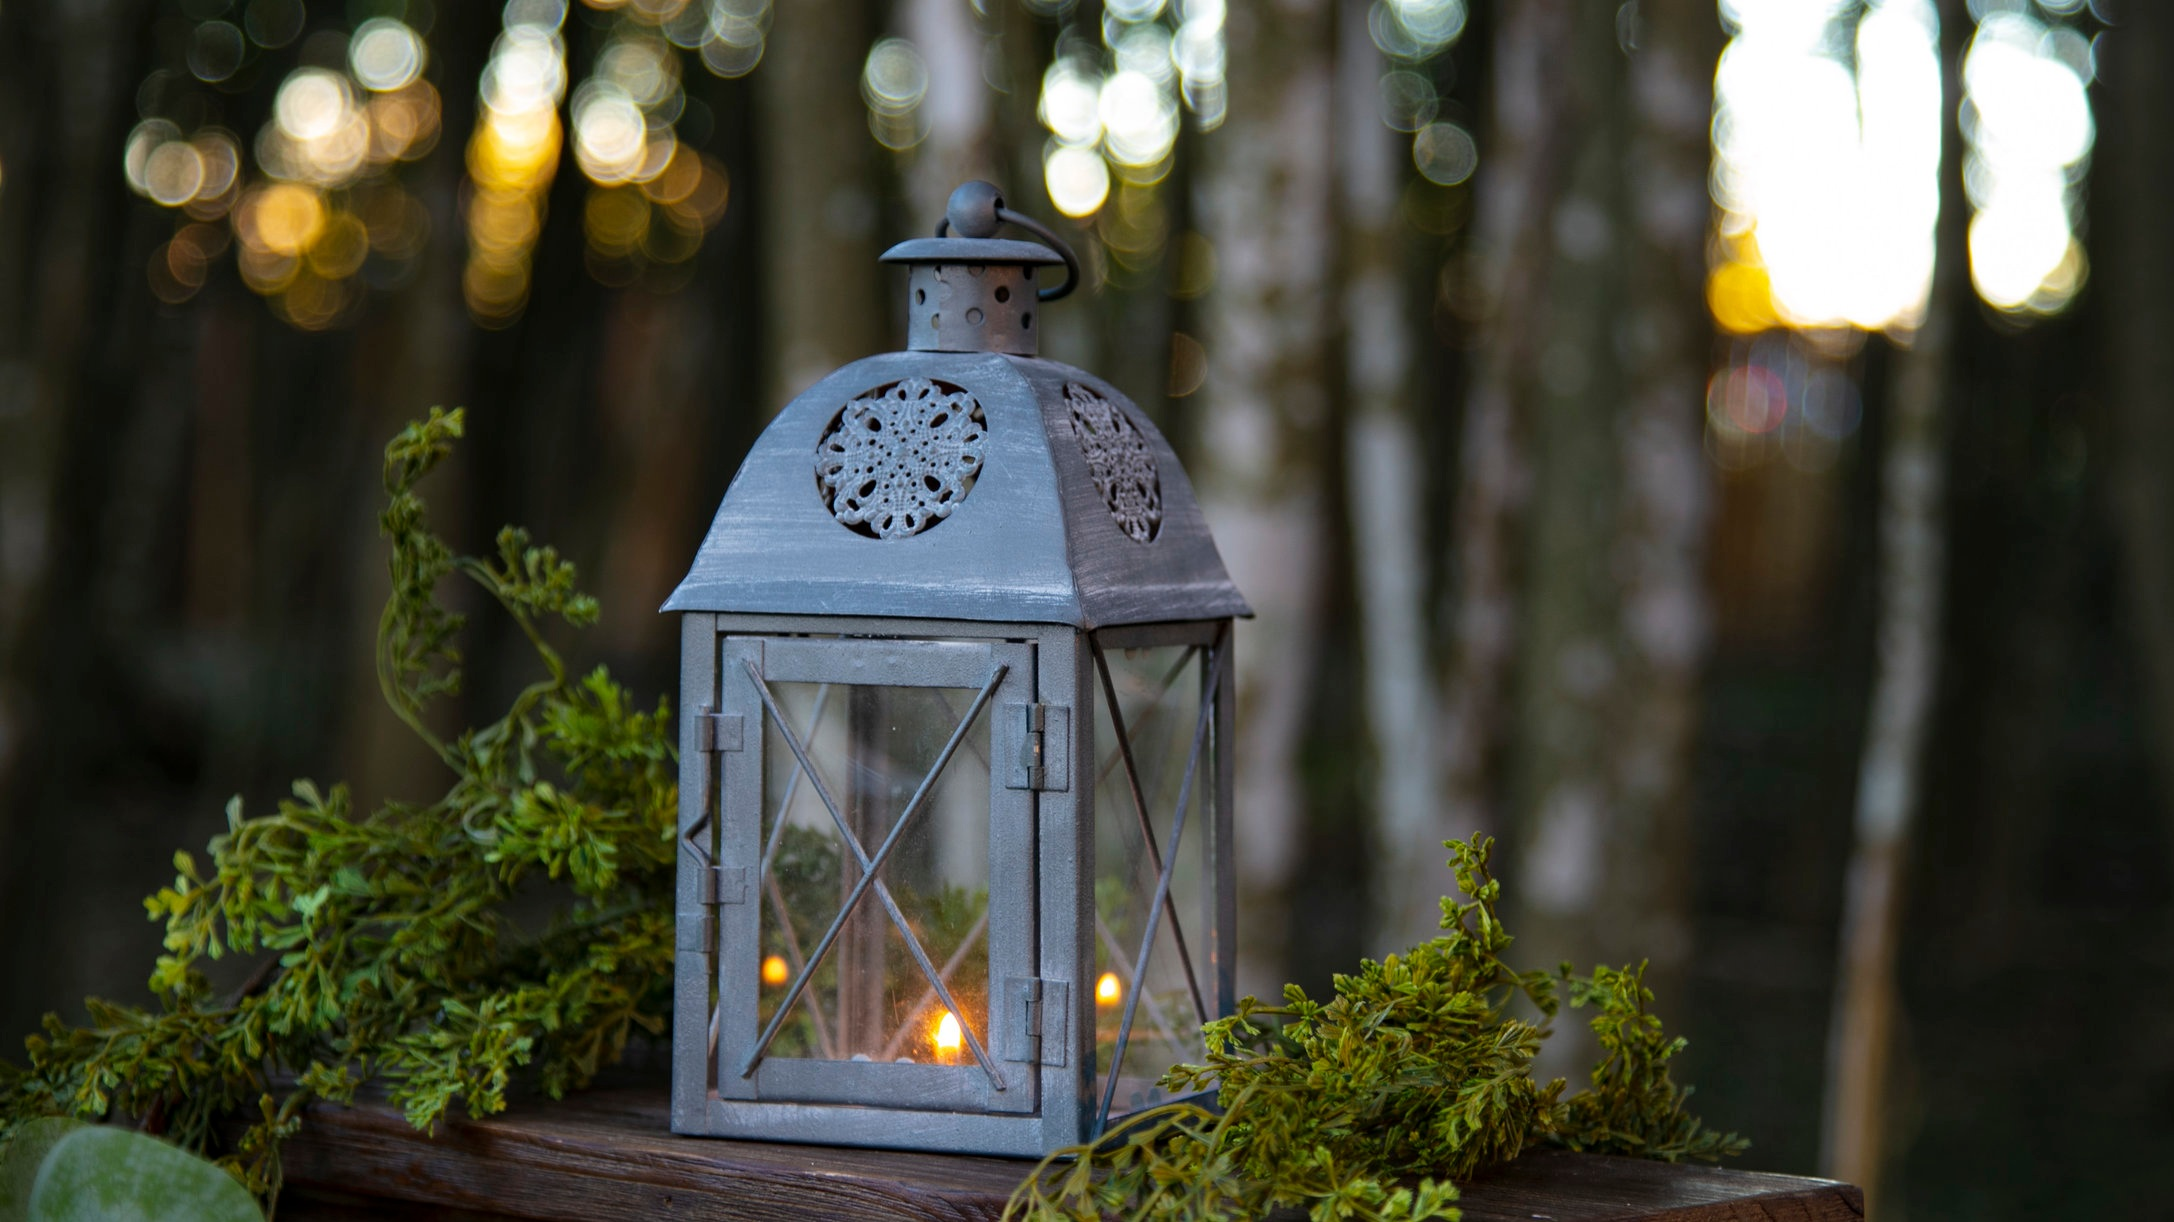 Gray Small Metal Lanterns  Qty: 4  Price: $7.50 each / $20.00 for all 4